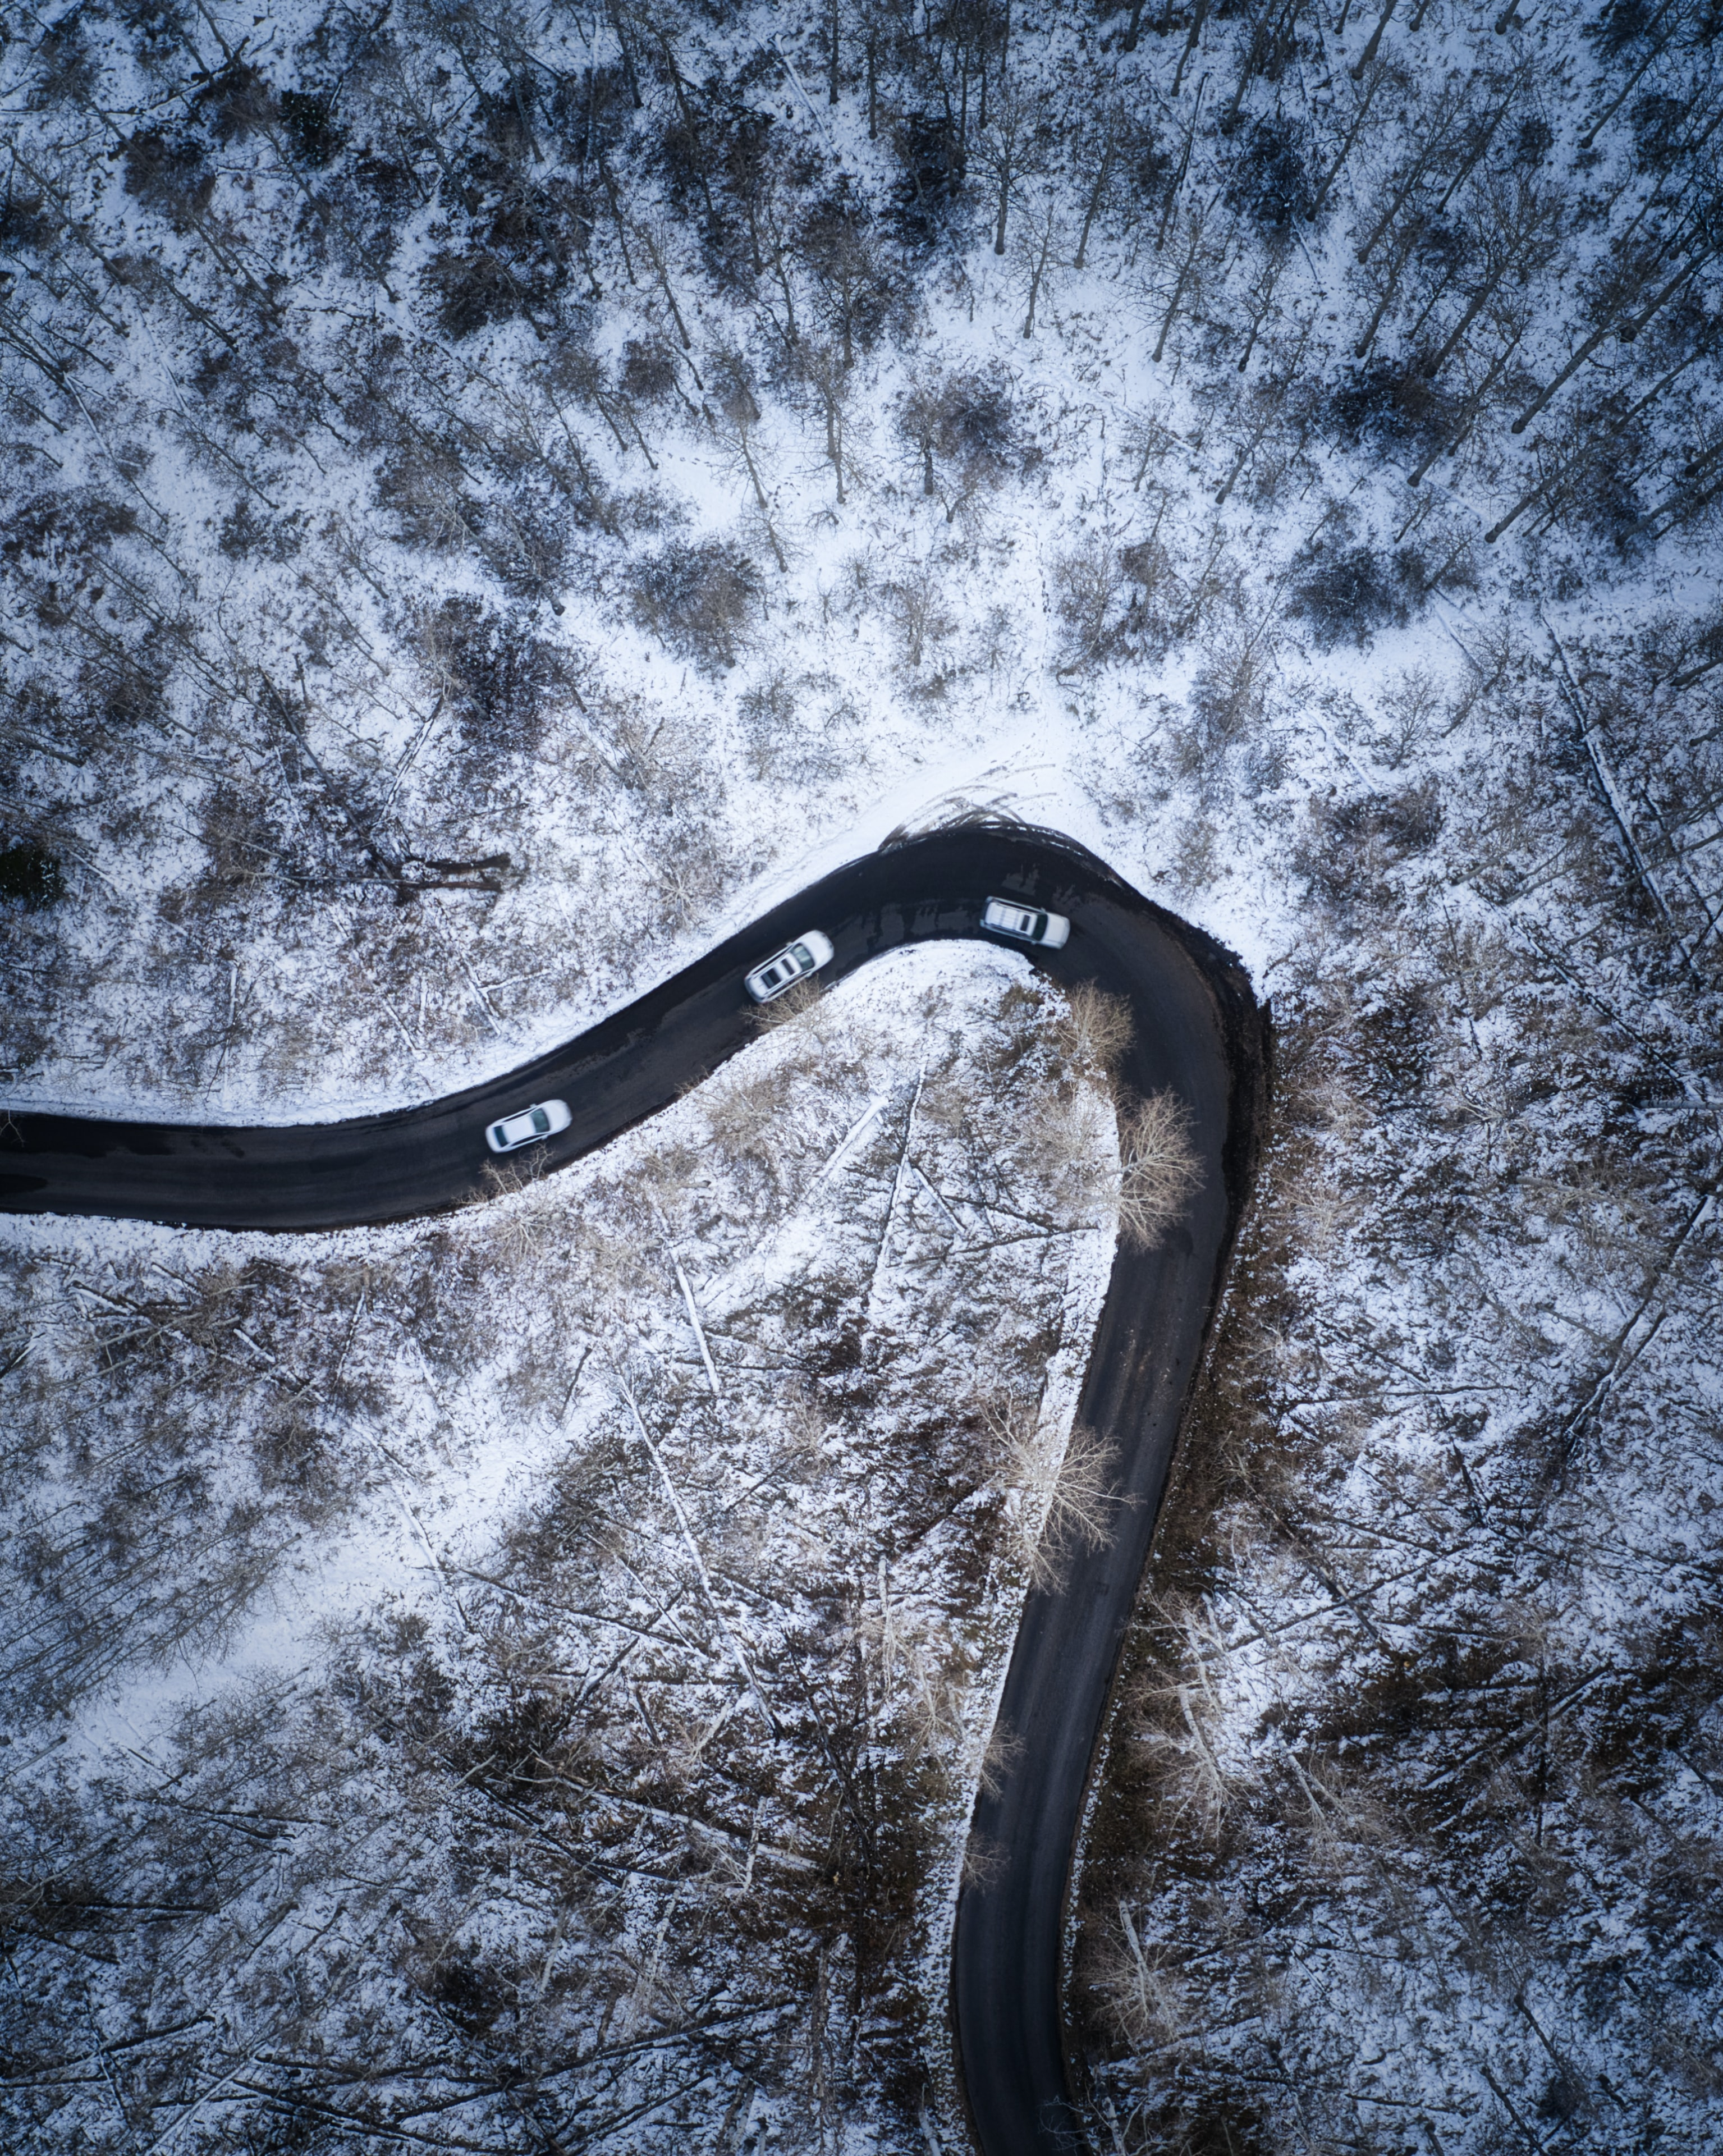 54767 download wallpaper Nature, Road, View From Above, Snow Covered, Snowbound, Snow, Auto screensavers and pictures for free